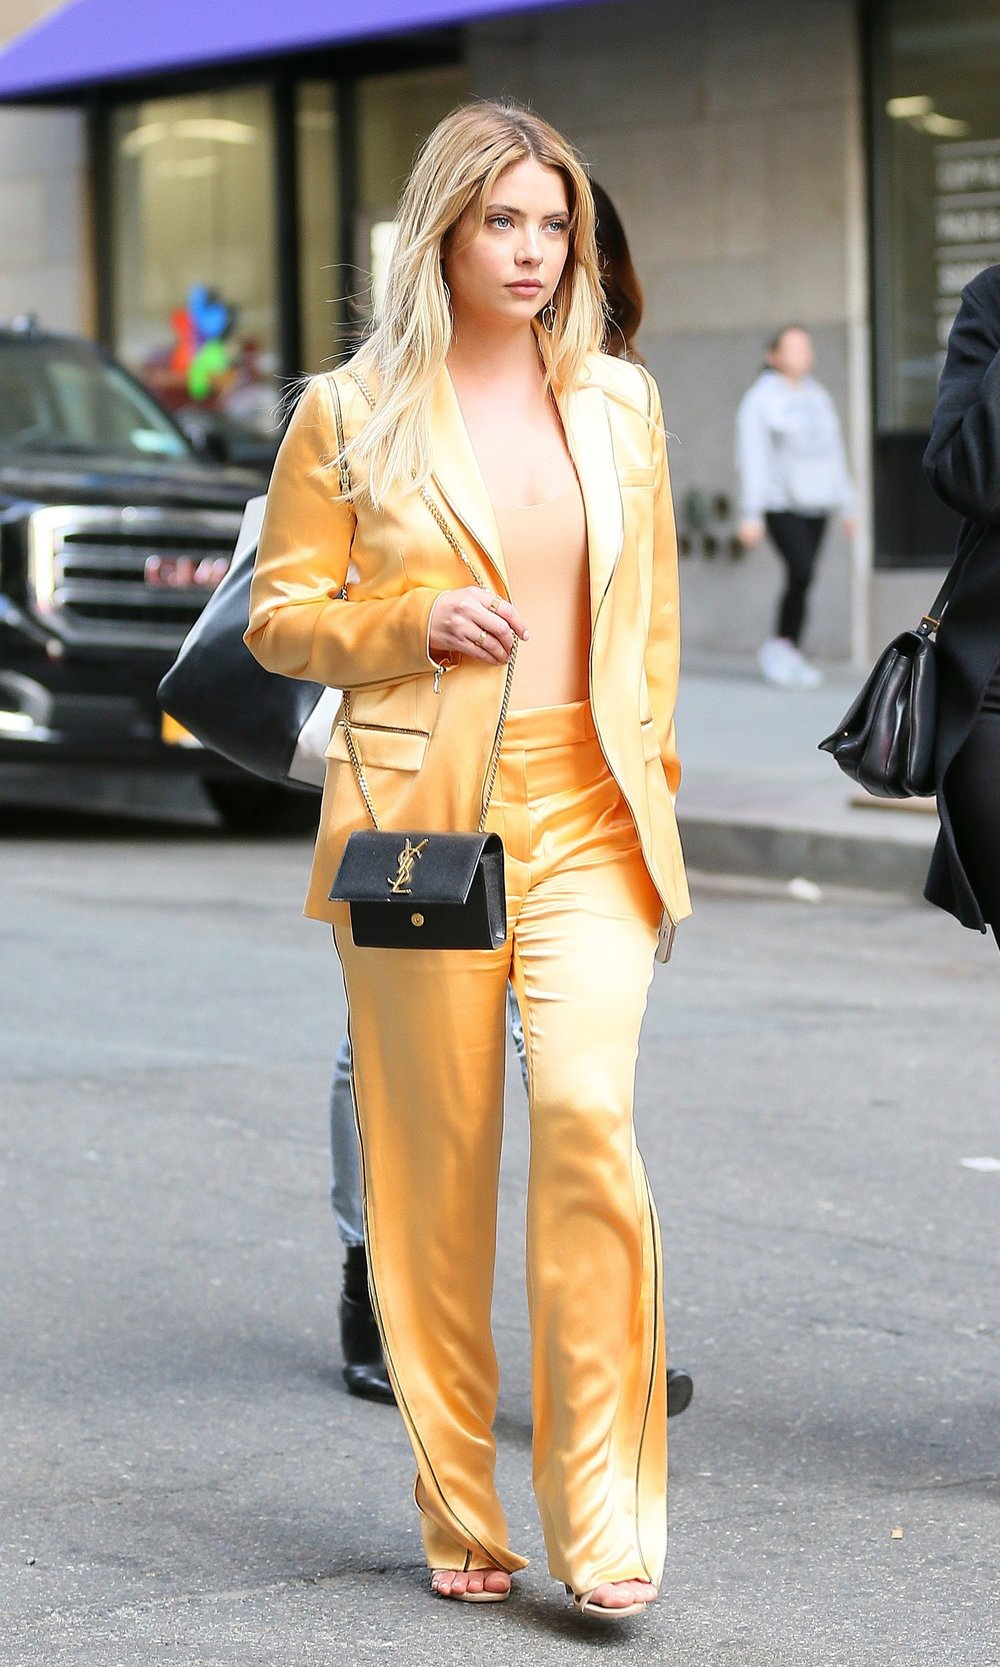 Ashley_Benson-wearing sophie theallet-Facebook-NY-Apr_17_2017-005.jpg